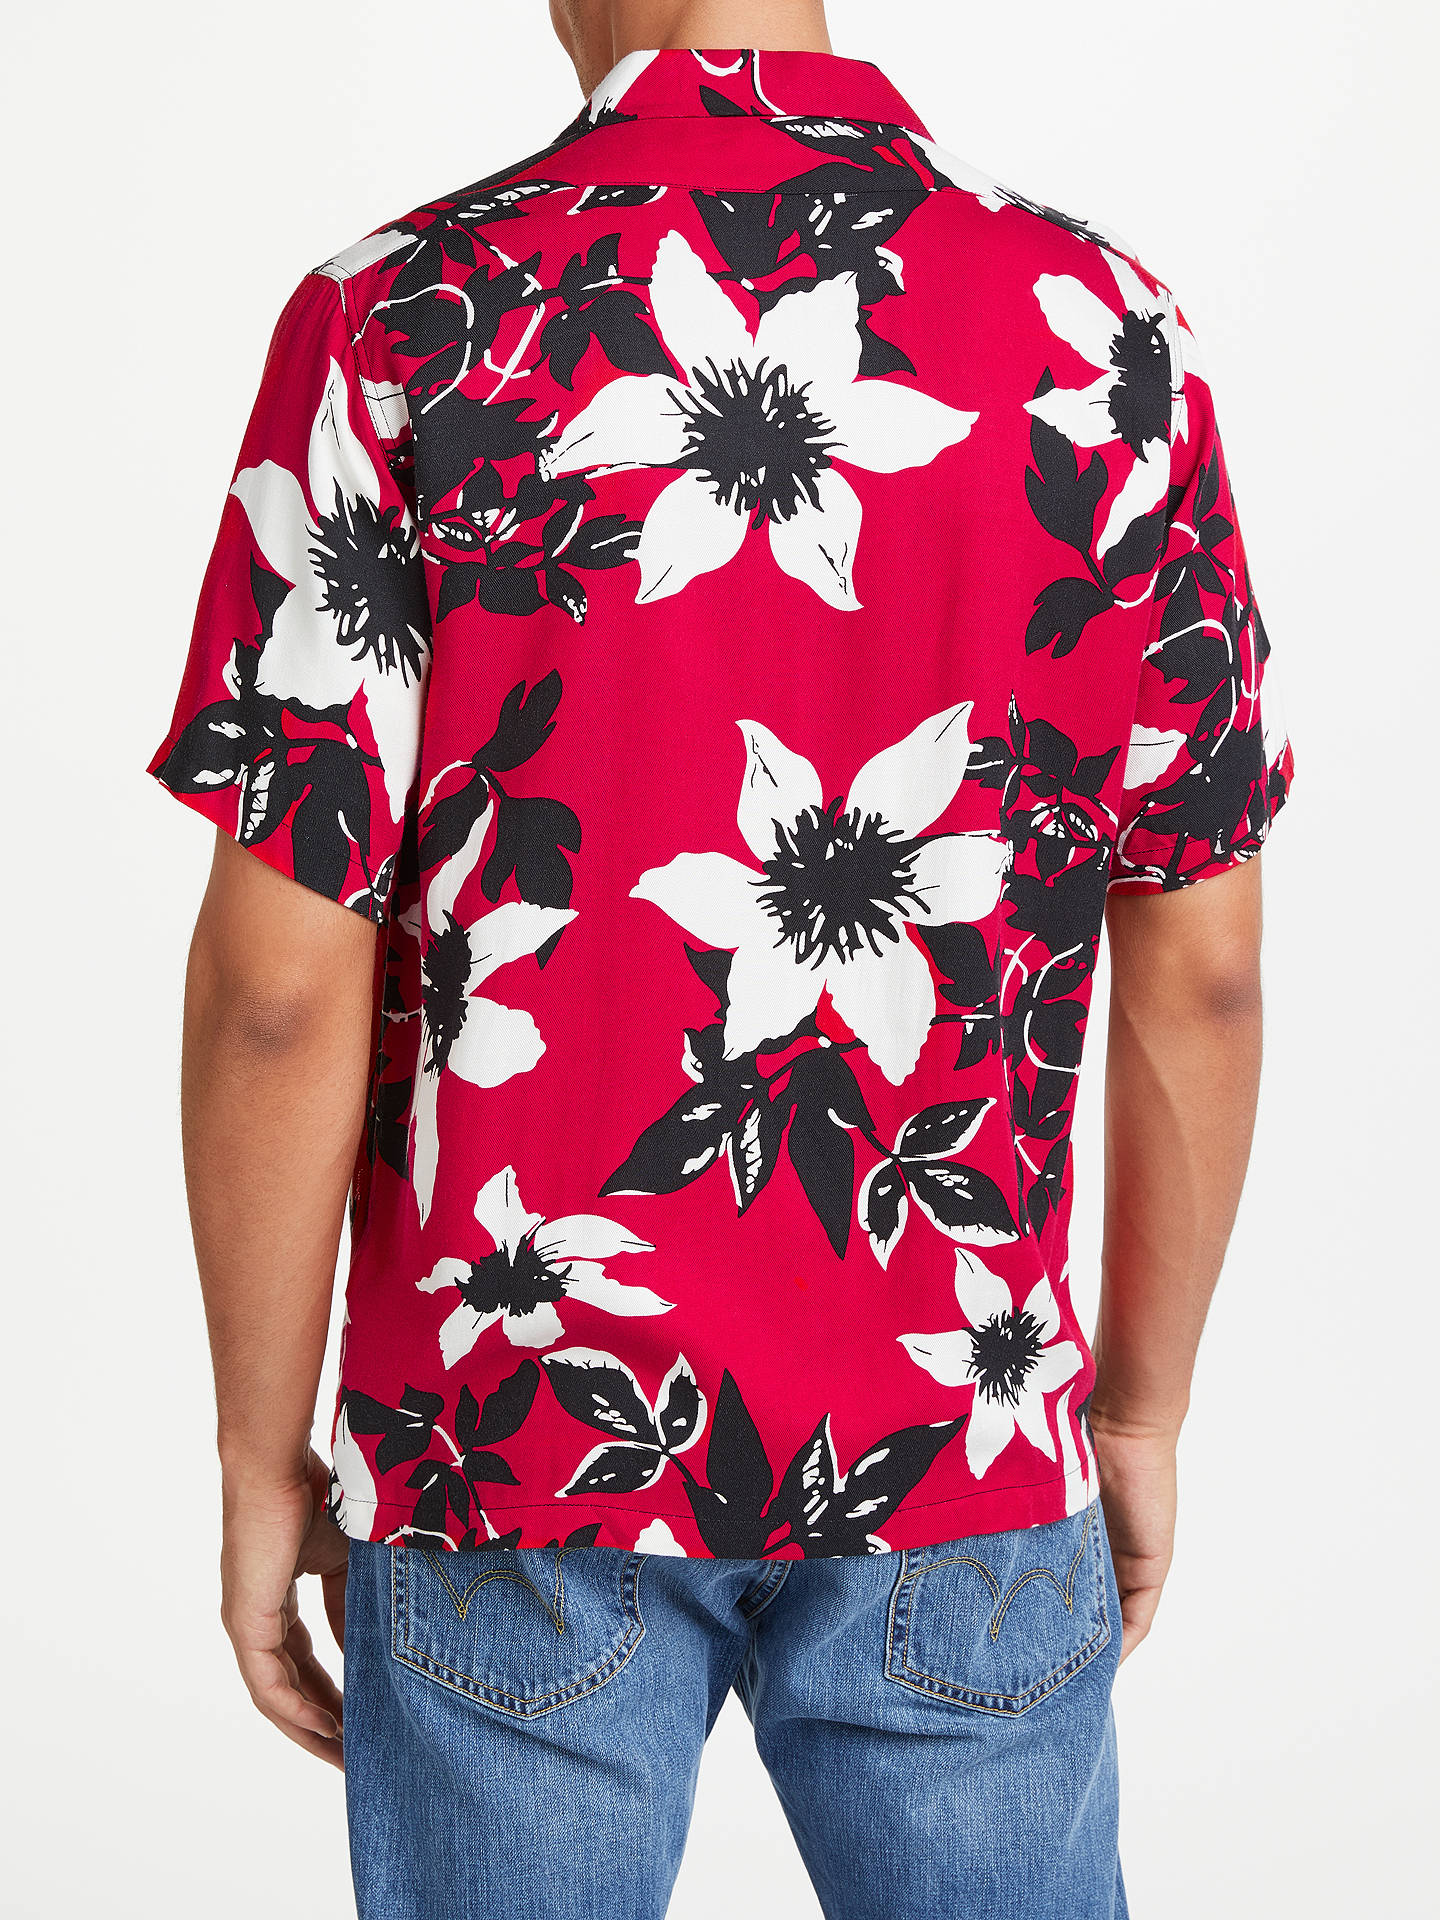 BuyEdwin Garage Floral Short Sleeve Shirt, Red, S Online at johnlewis.com